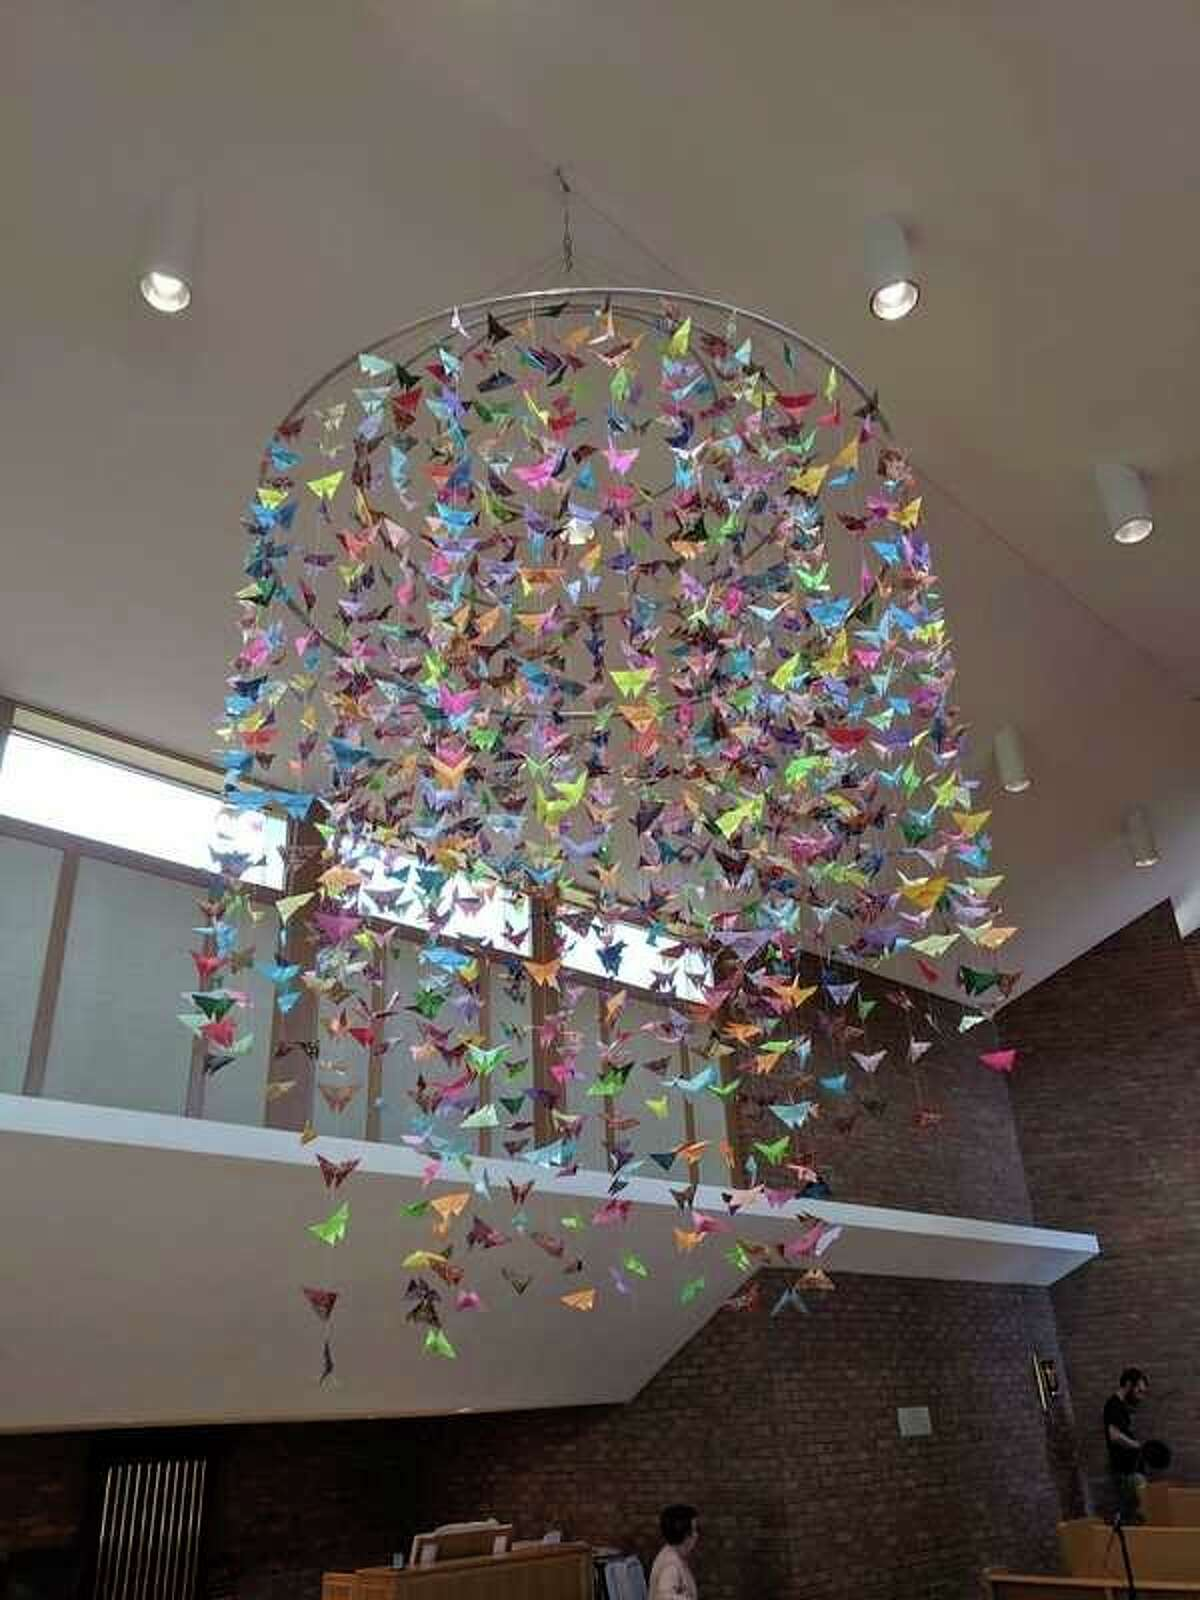 The origami butterfly chandelier at St. John's Episcopal Church in Midland. The butterfly art symbolizes the resurrection and new life. (photo provided)